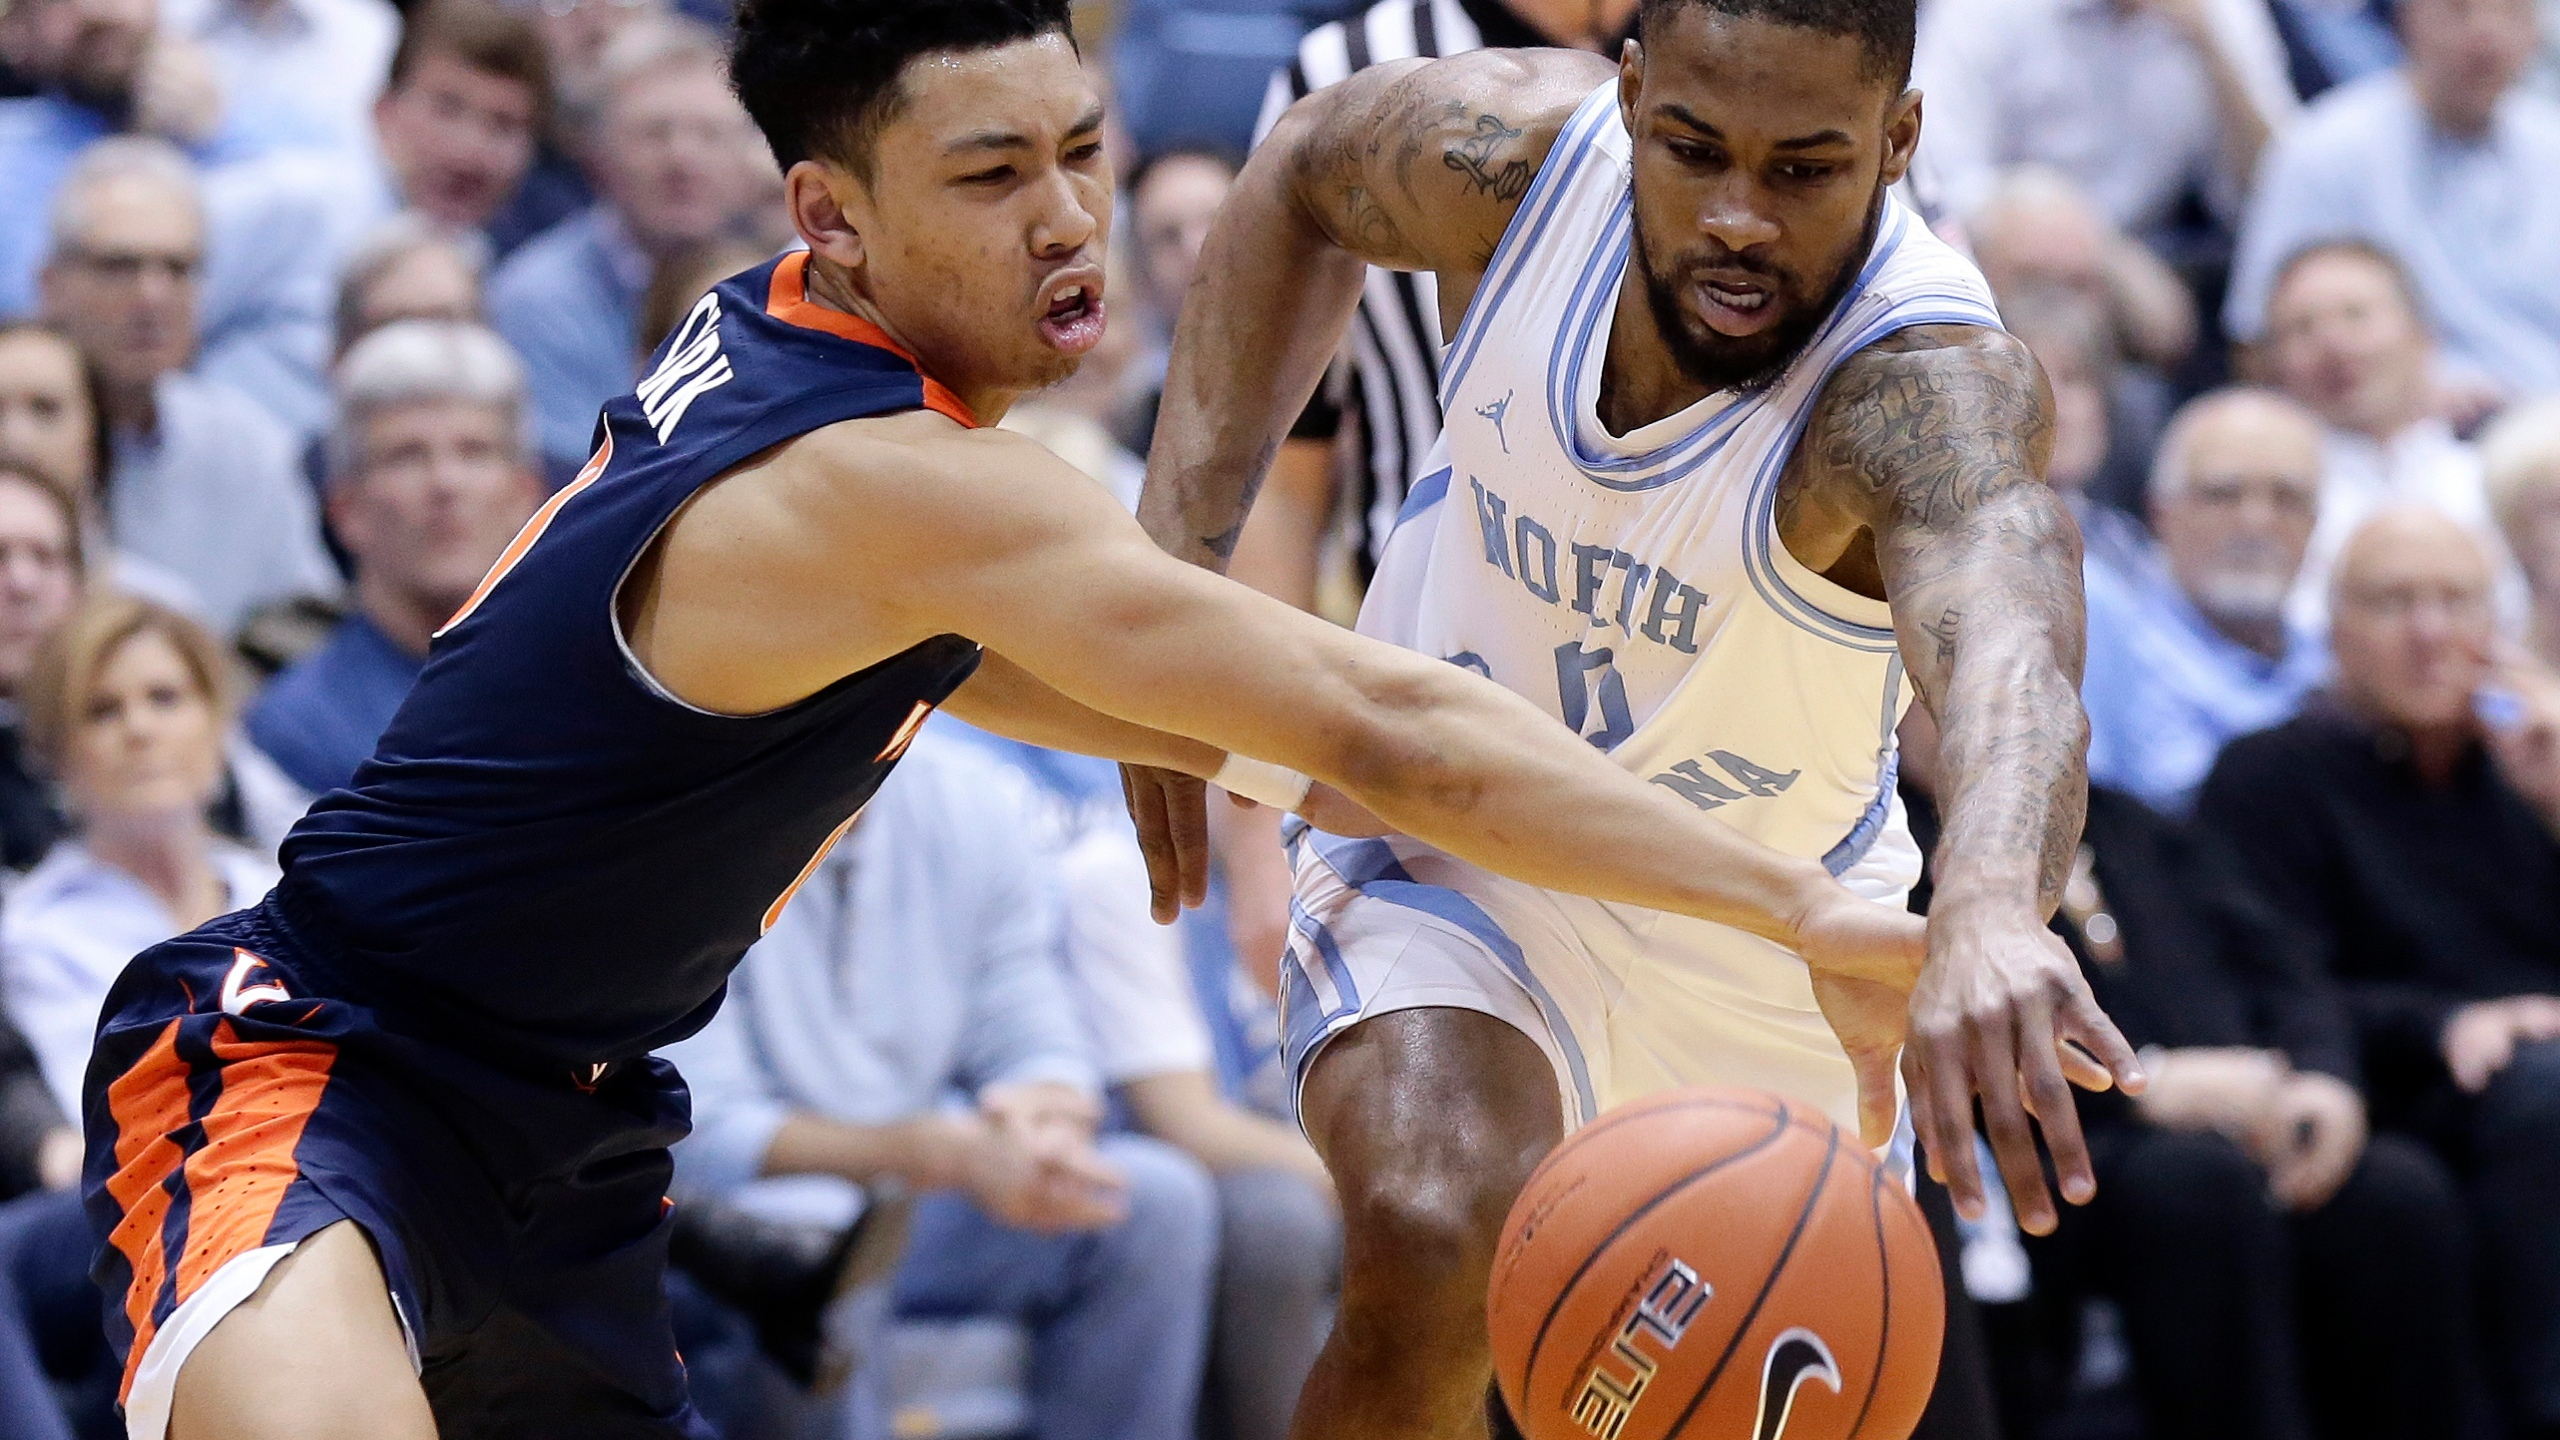 Virginia_North_Carolina_Basketball_65268-159532.jpg00369312